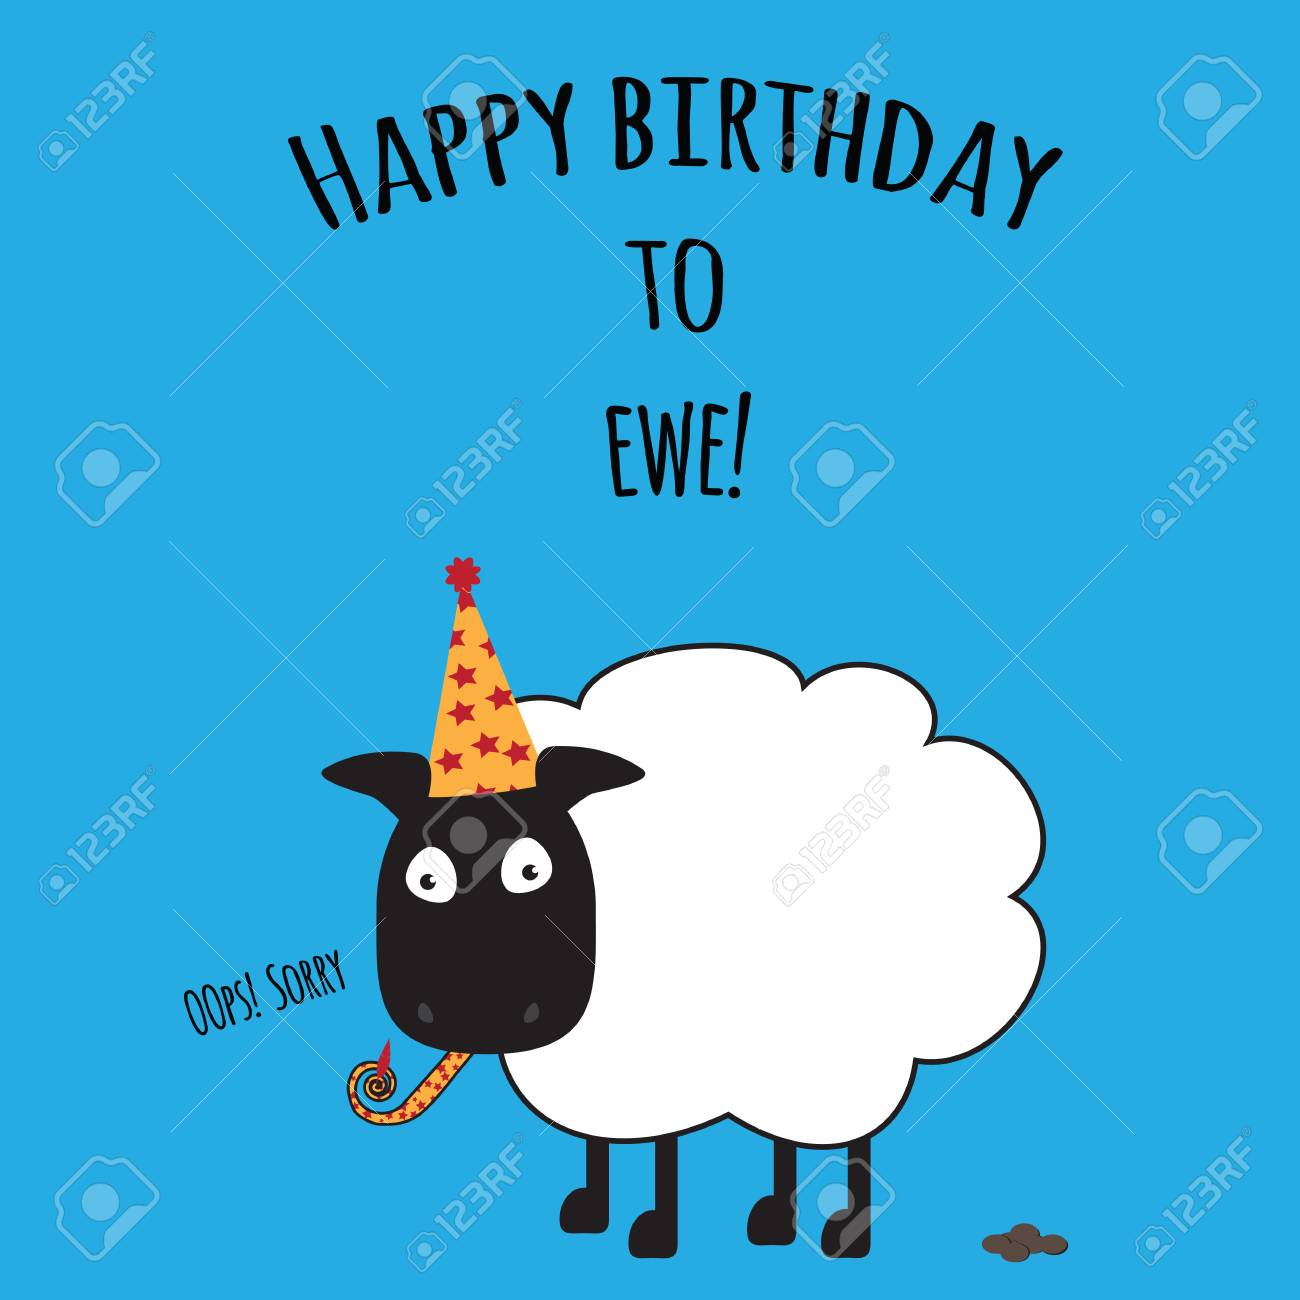 Birthday Card With Happy Birthday To Ewe With Cute Sheep Image